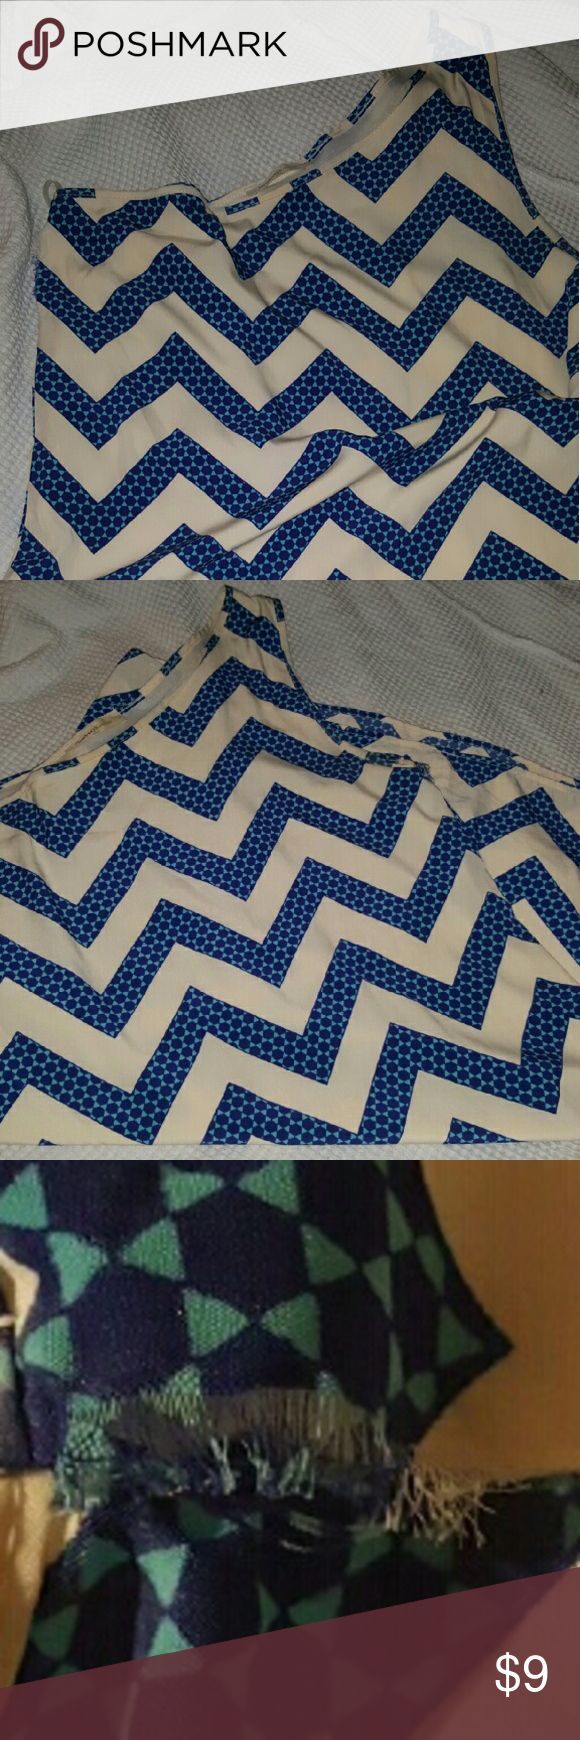 Off the shoulder Chevron Print Dress Cute one shoulder Chevron dress. Very small rip in the seam under the arm. This item was worn once. Newberry Kuston Dresses Mini